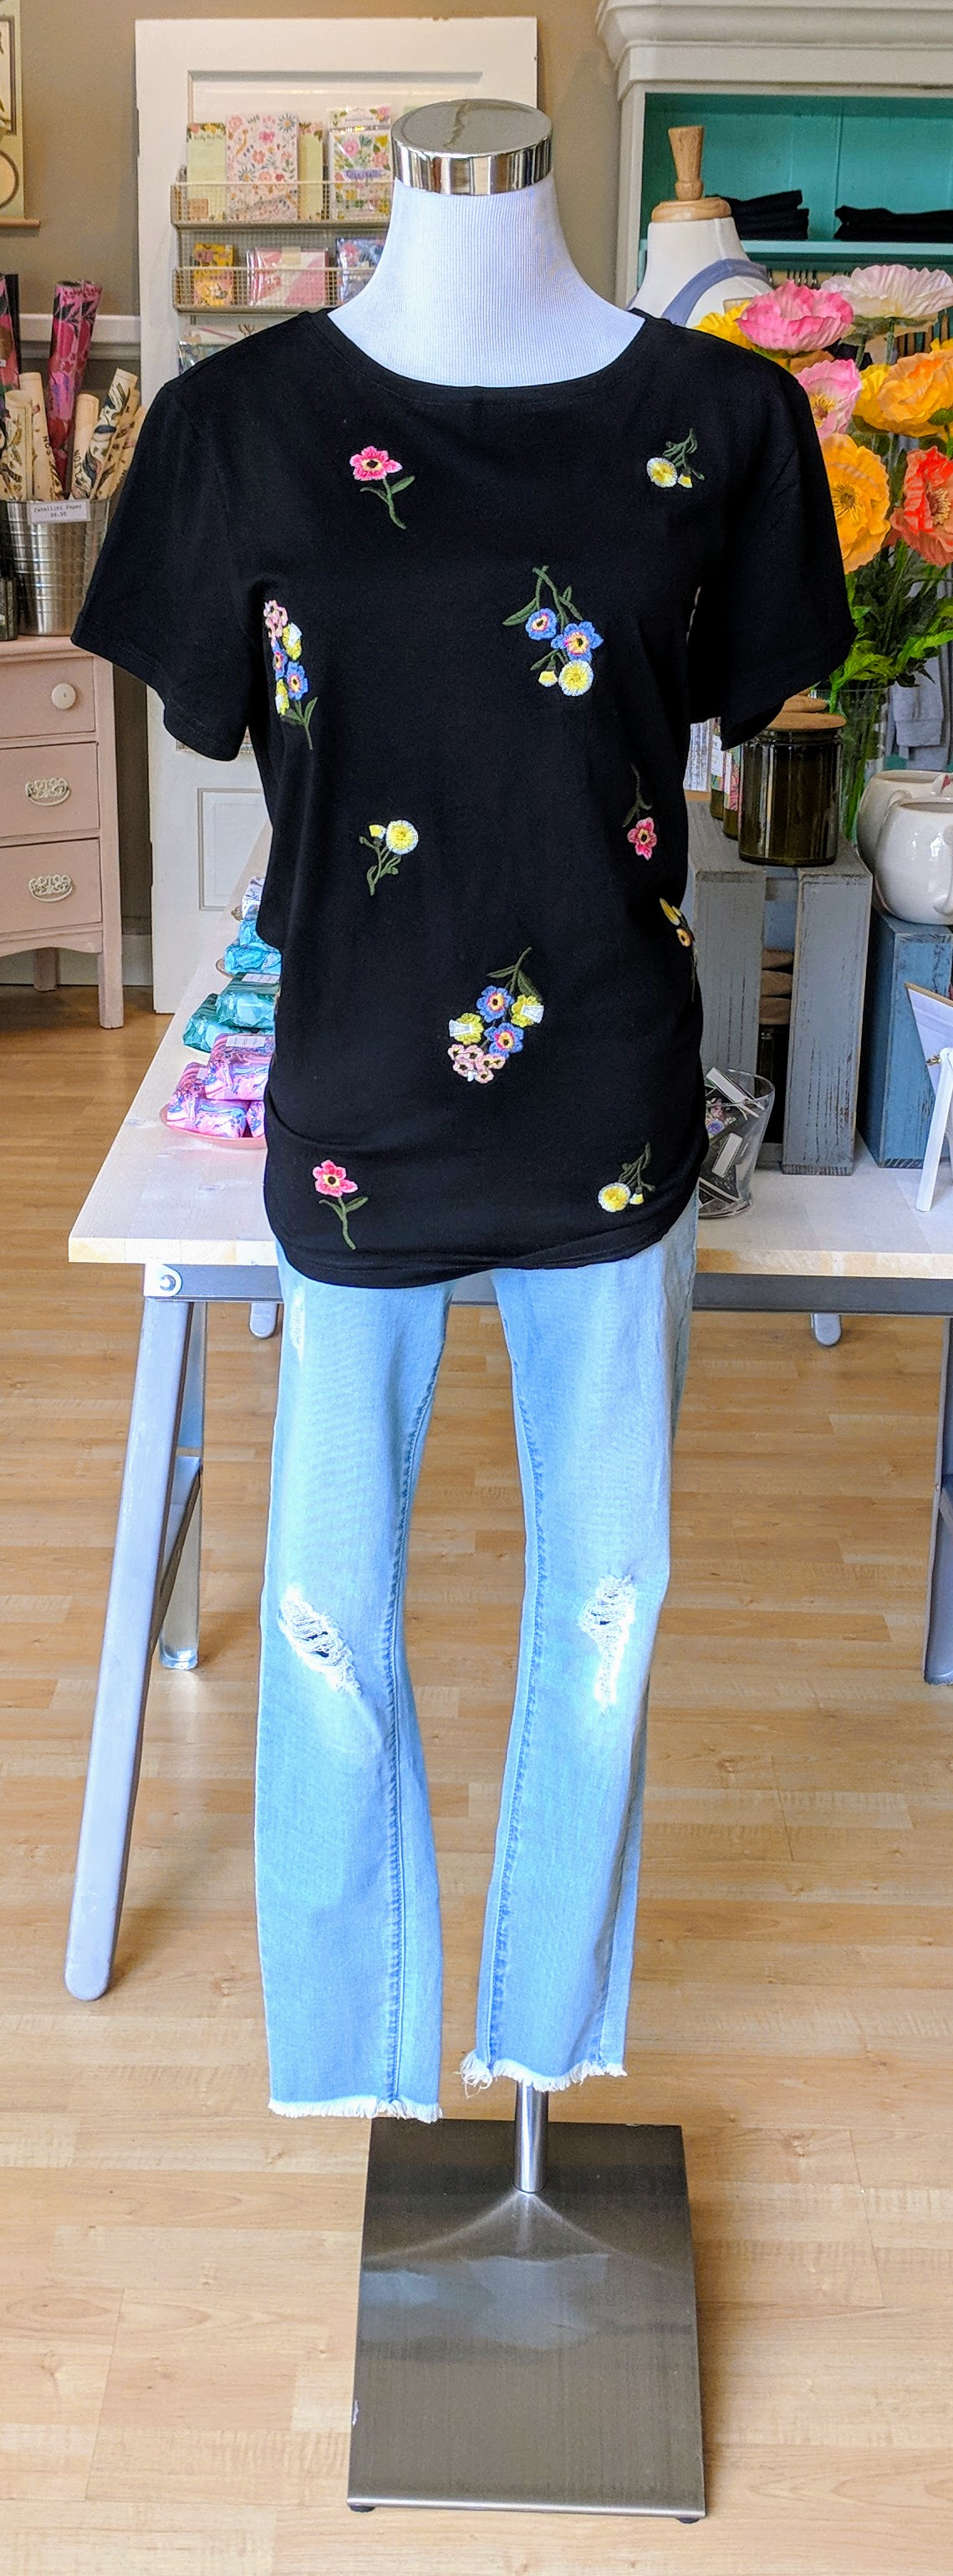 Black floral top with embroidered detail.